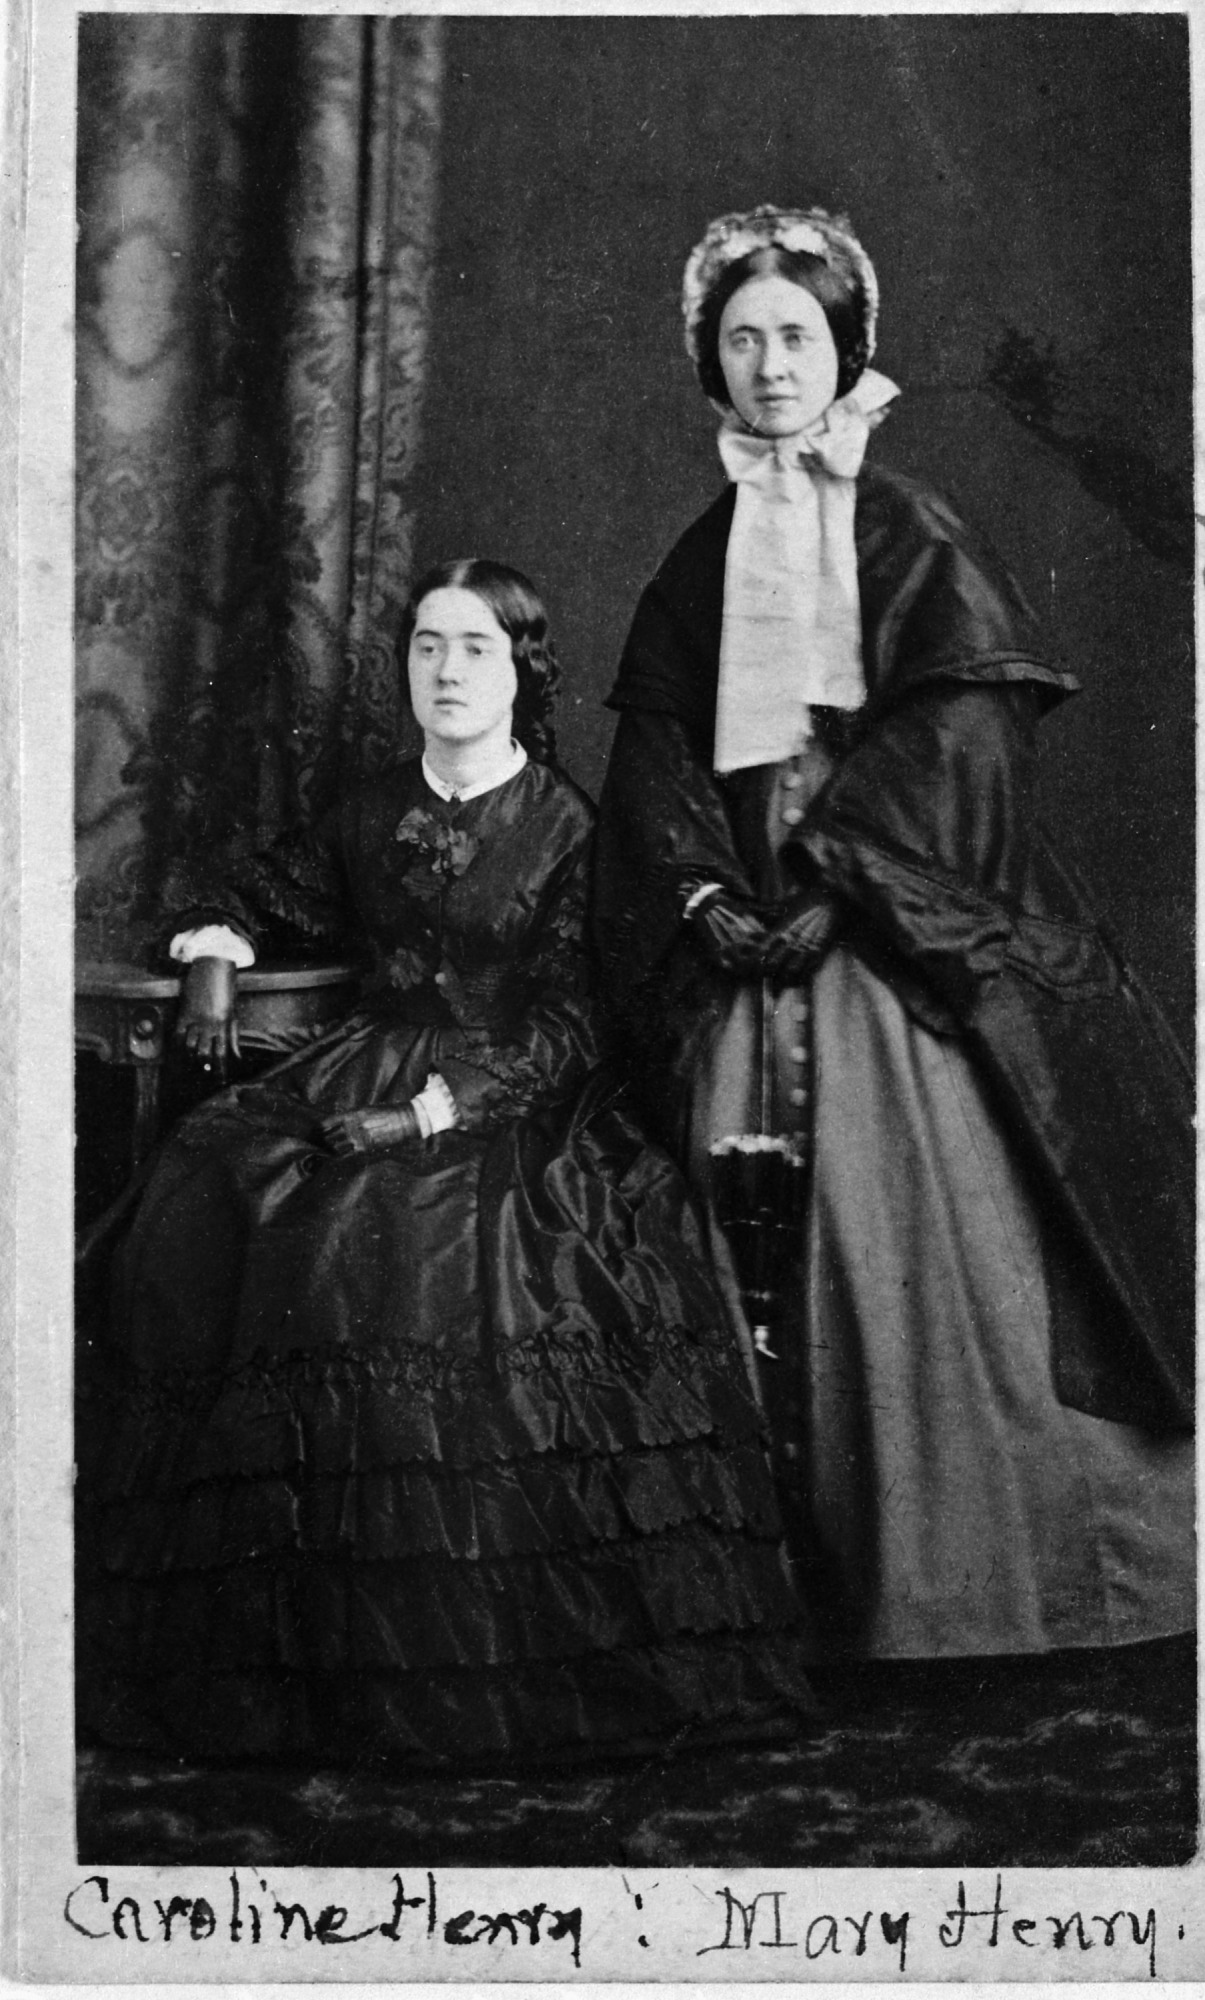 Joseph Henry's Daughters Caroline & Mary, by Unknown, c. 1855, Smithsonian Archives - History Div, 46638-G or MAH-46638G.